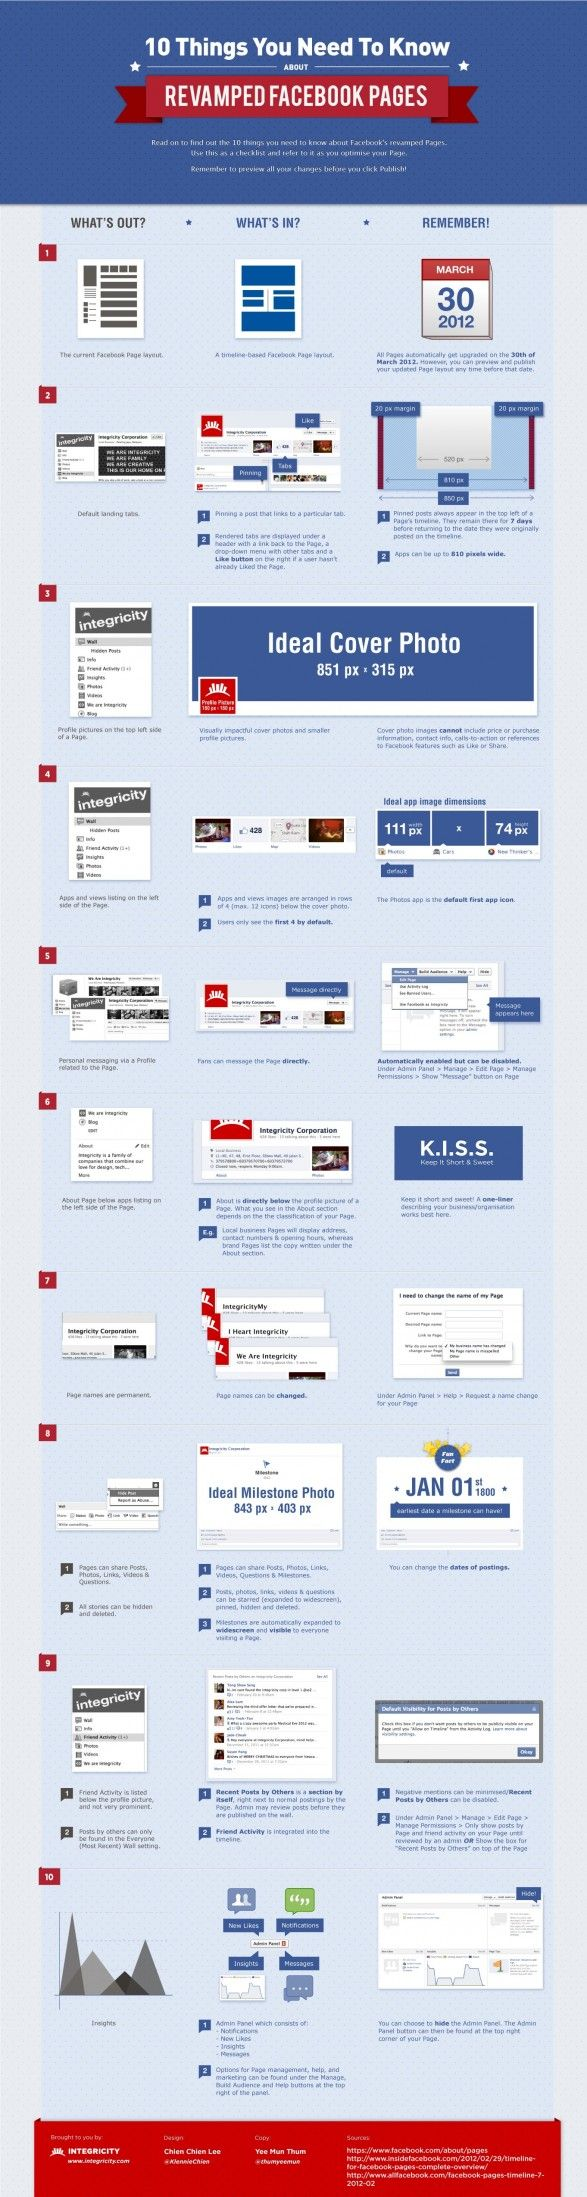 10 Things You Need To Know about Revamped Facebook Pages! Tnx to @bram1980Socialmediamarketing, Marketing Strategies, Pages Design, Digital Marketing, Social Media Marketing, Revamp Facebook, Web Design Layout, 10 Things, Infographic